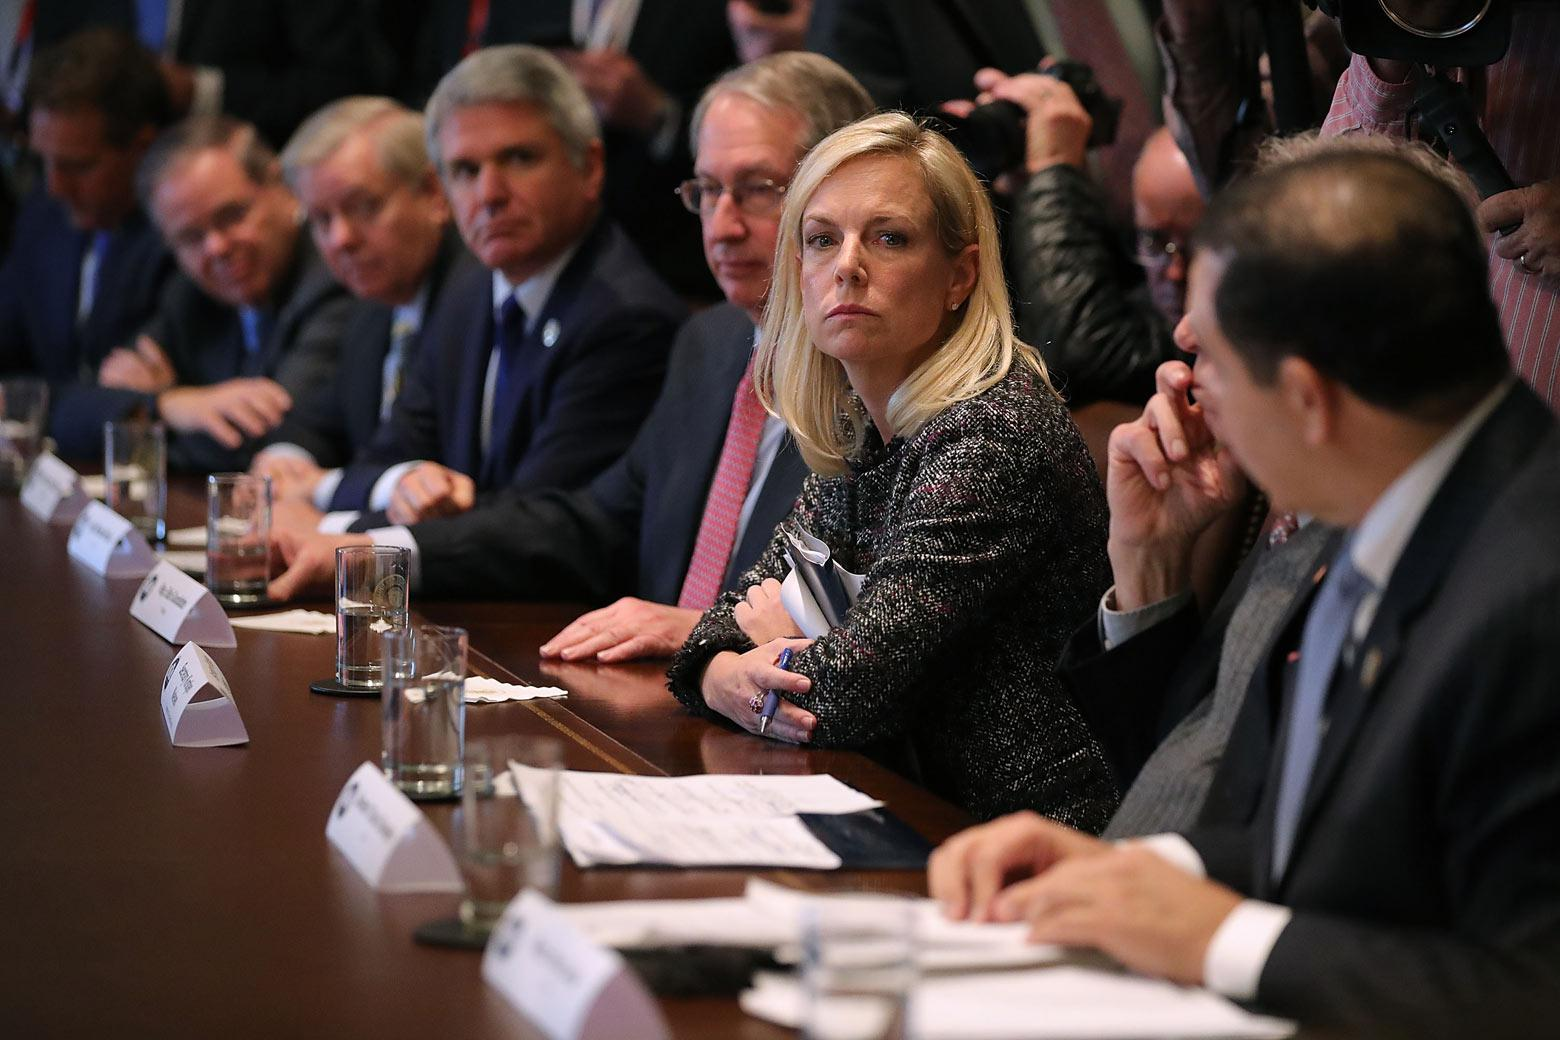 Homeland Security Secretary Kristjen Nielsen joins President Donald Trump and Republican and Democrat members of Congress for a meeting on immigration on Tuesday in Washington.